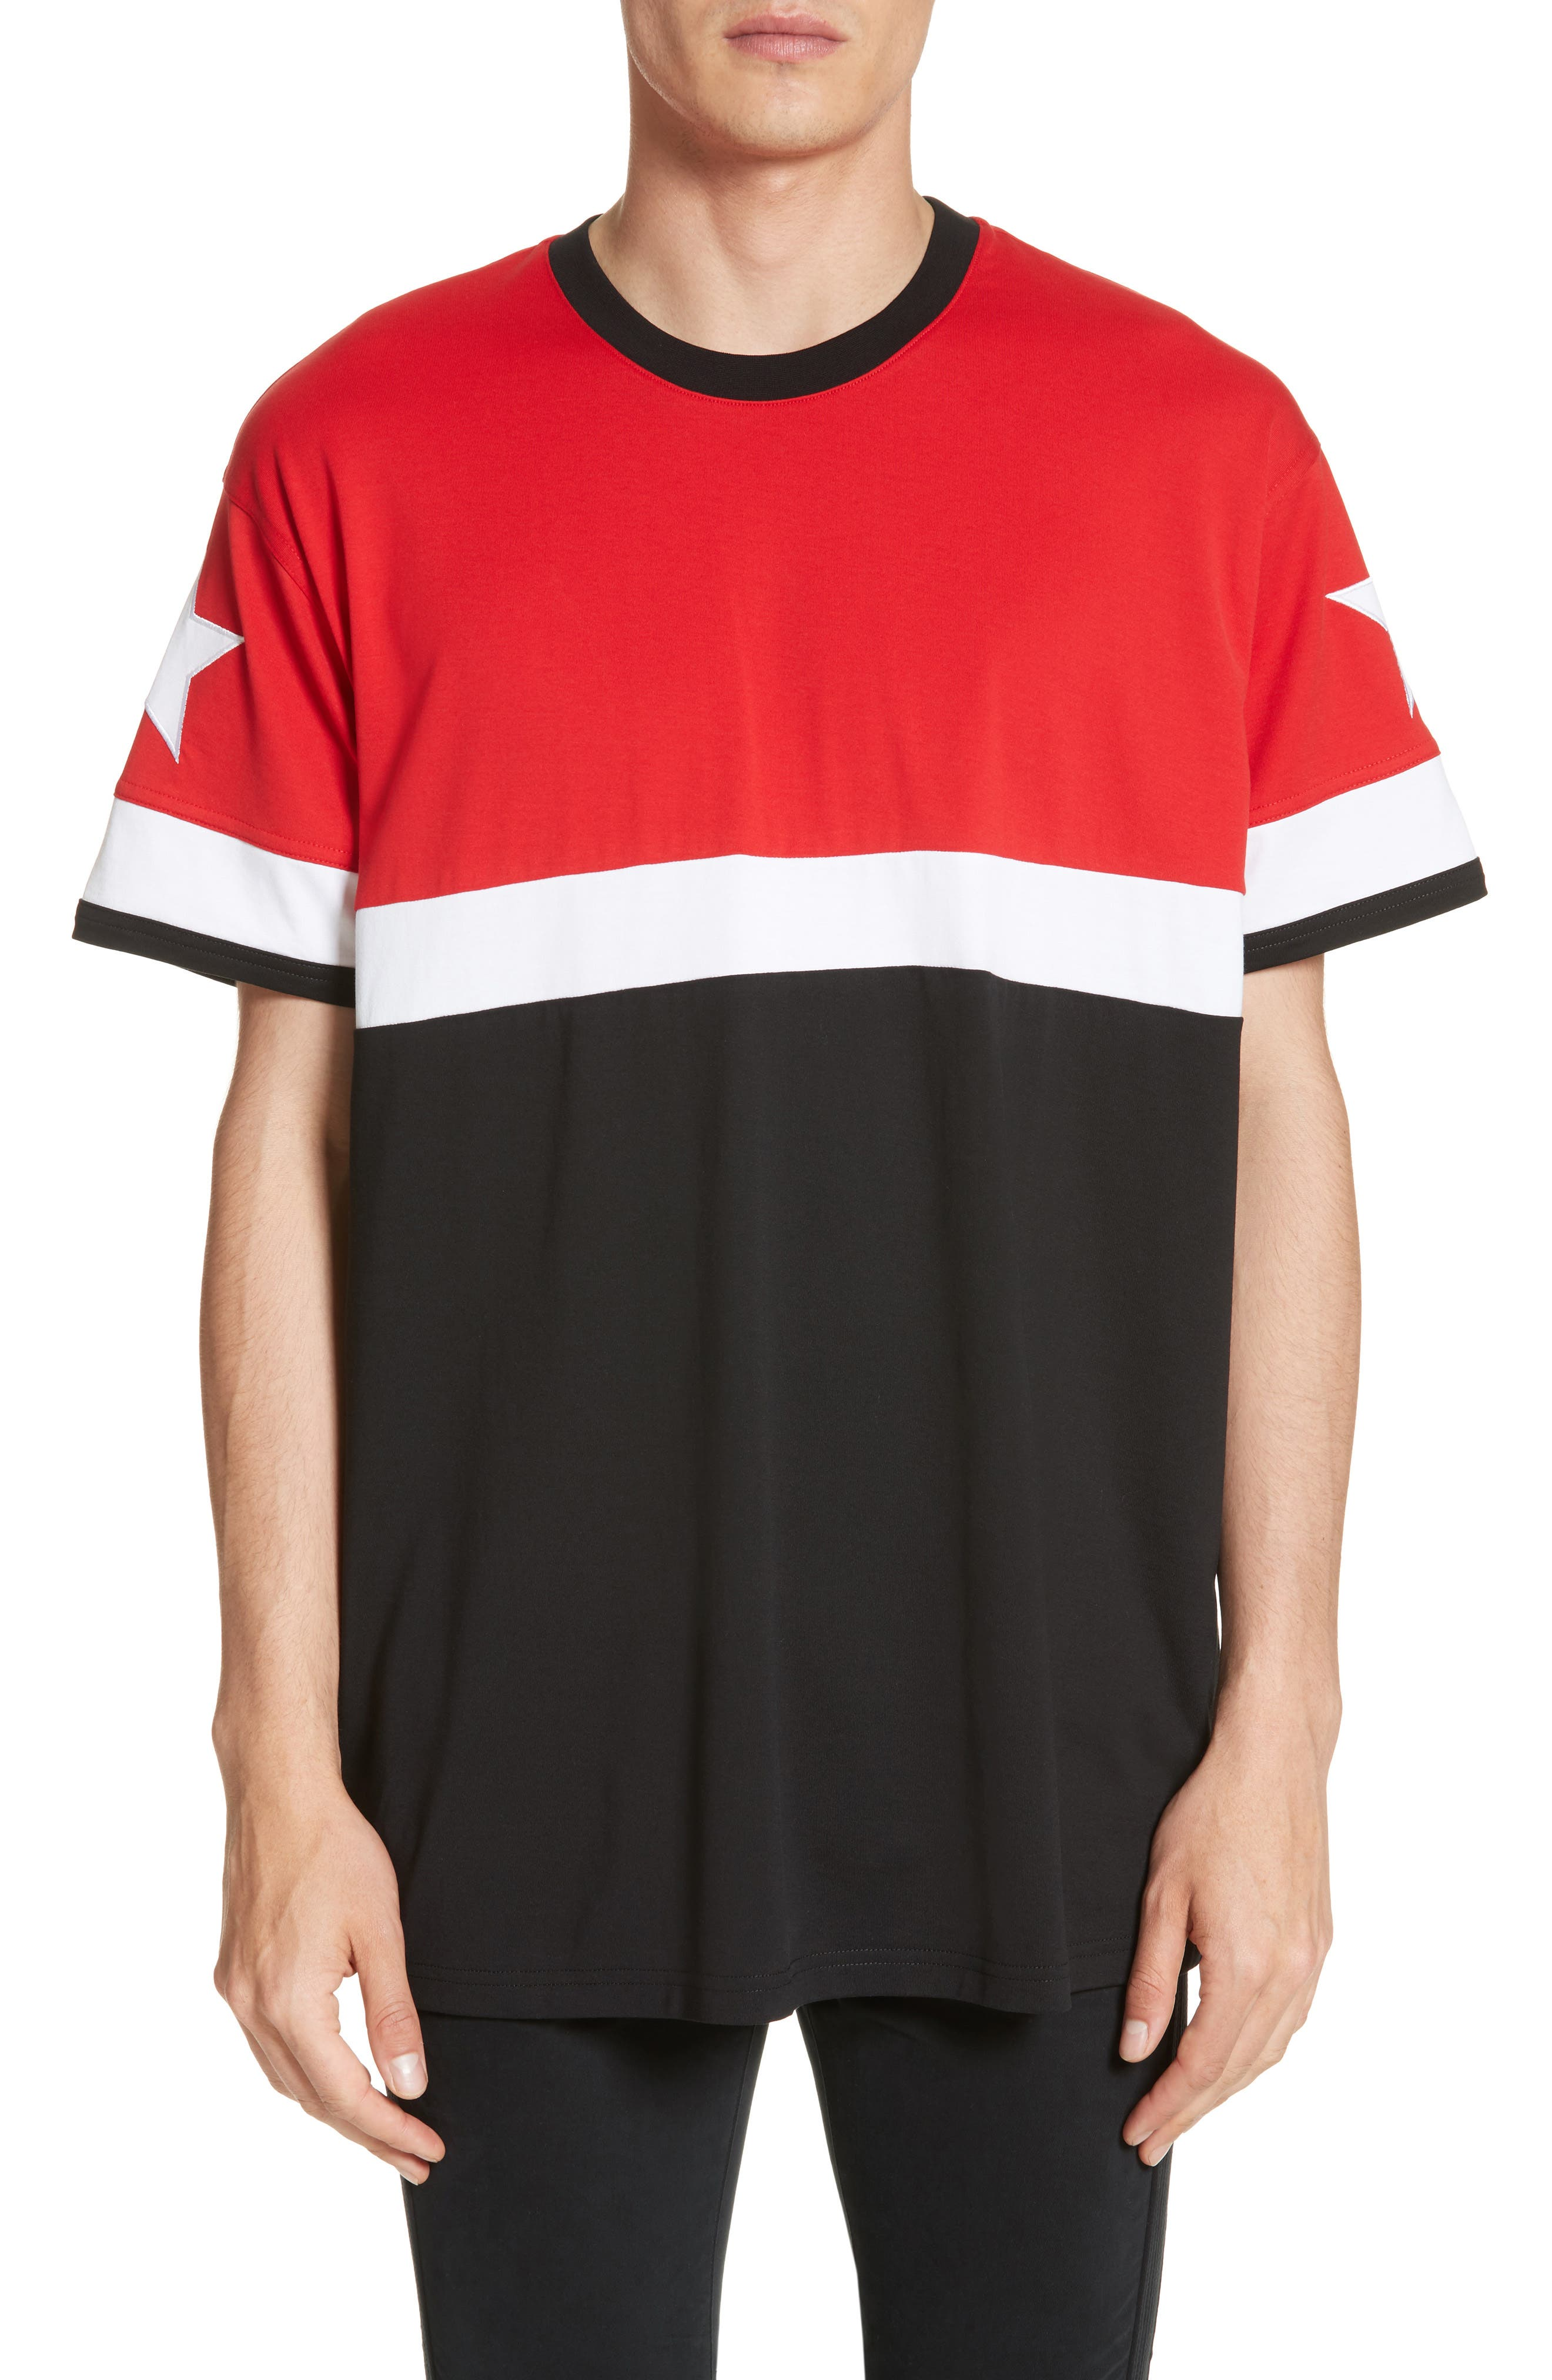 Givenchy Columbian Fit Colorblock T-Shirt